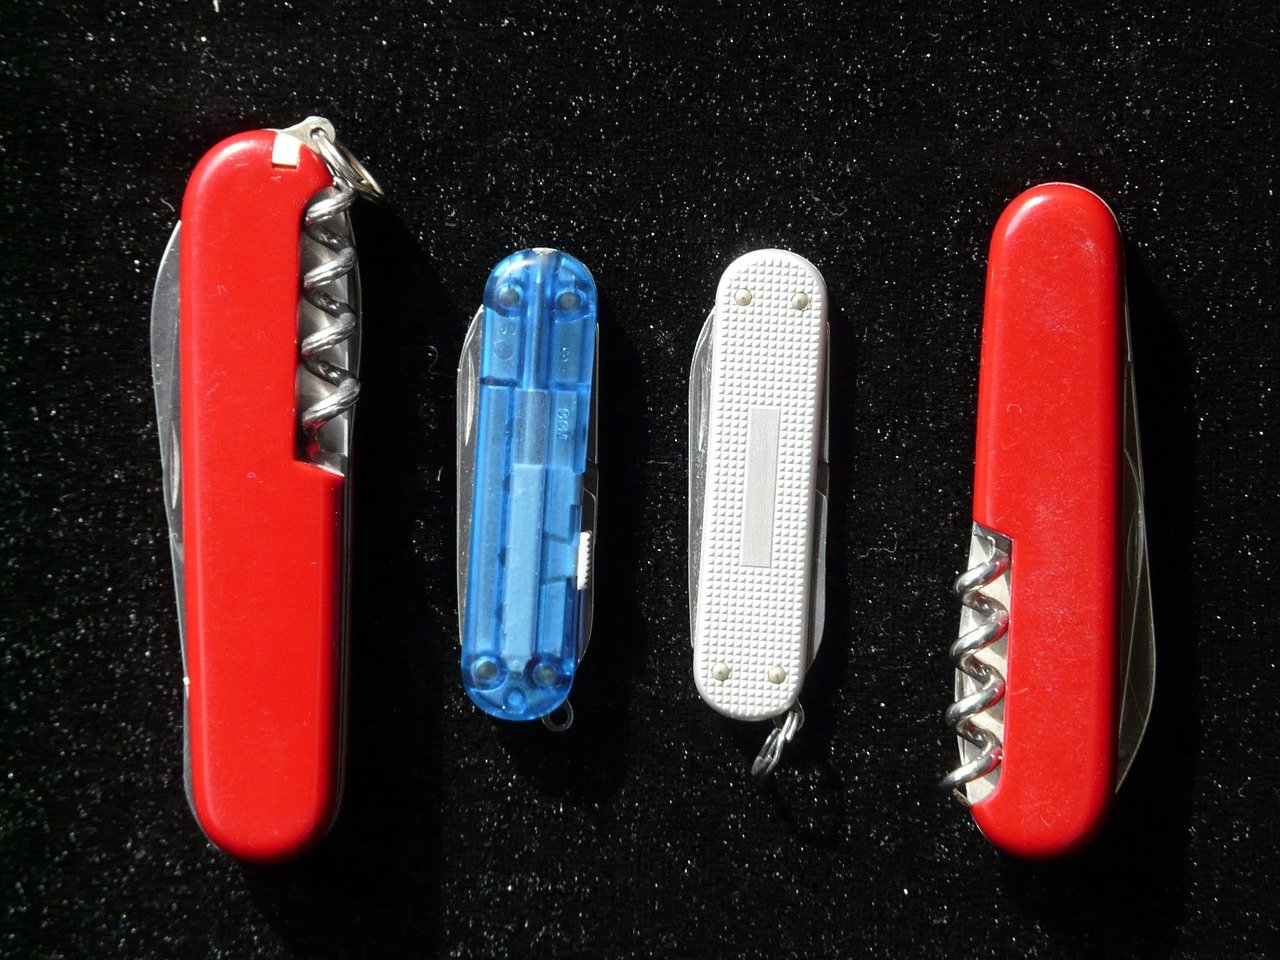 swiss army knife hard to open